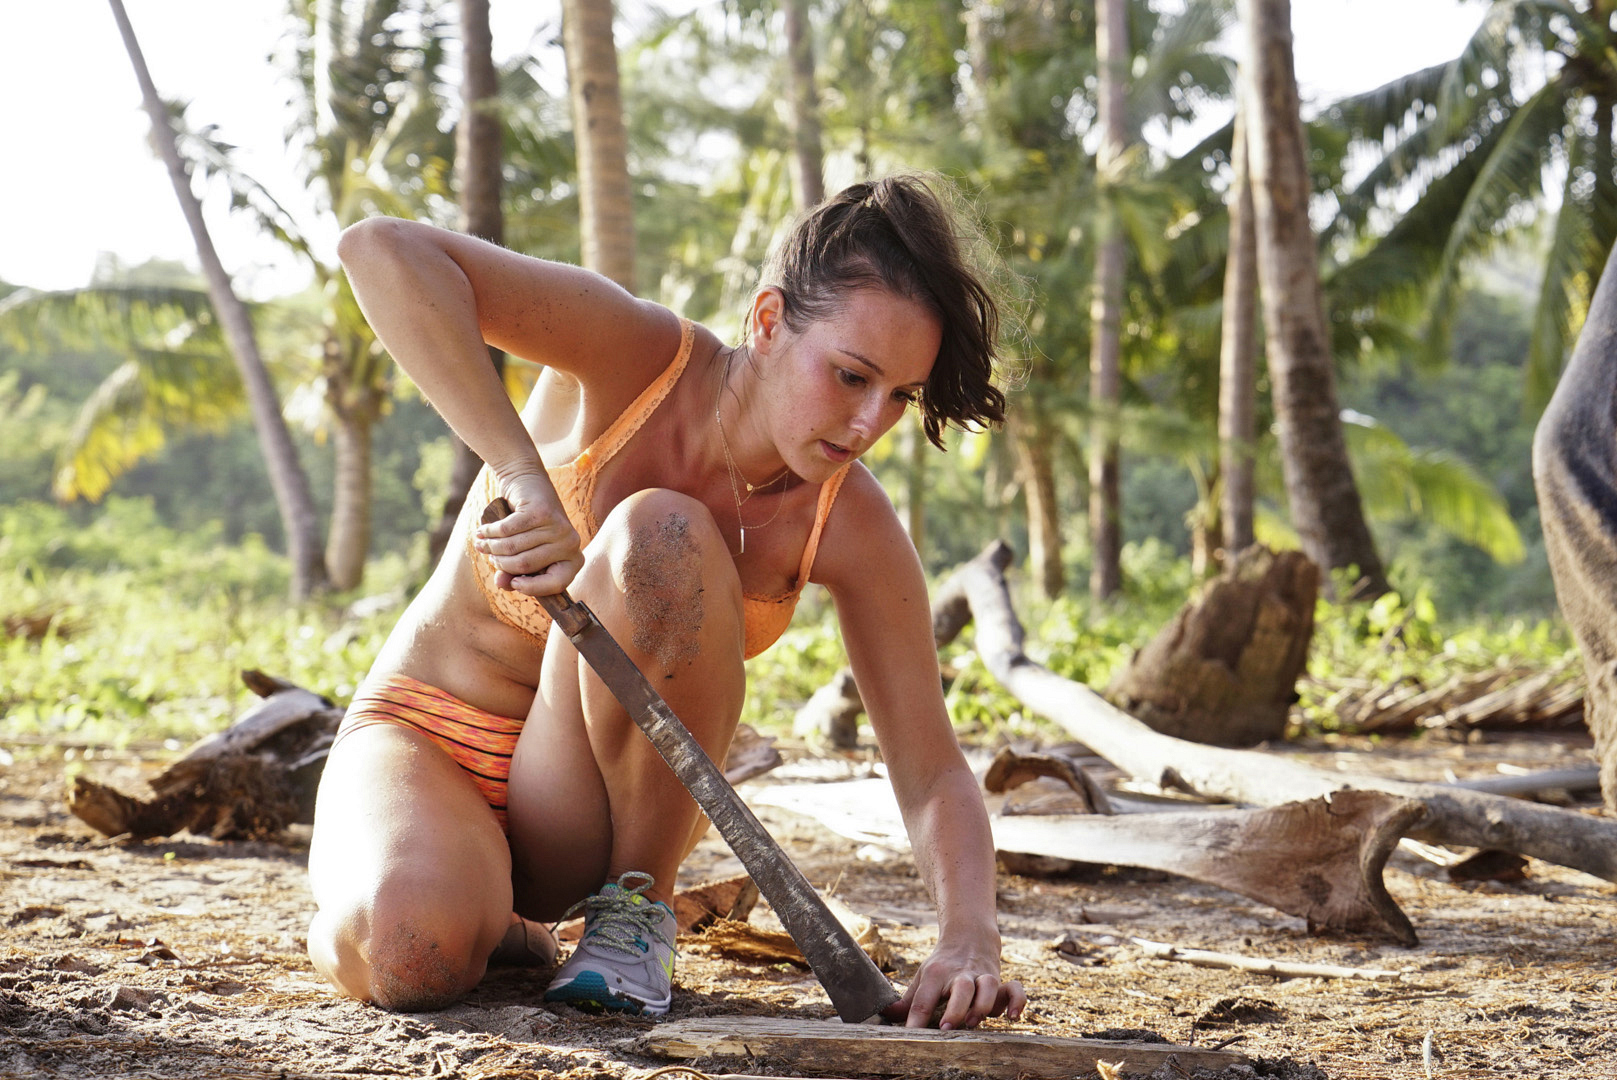 5. Did you practice any survival skills before actually going on Survivor?